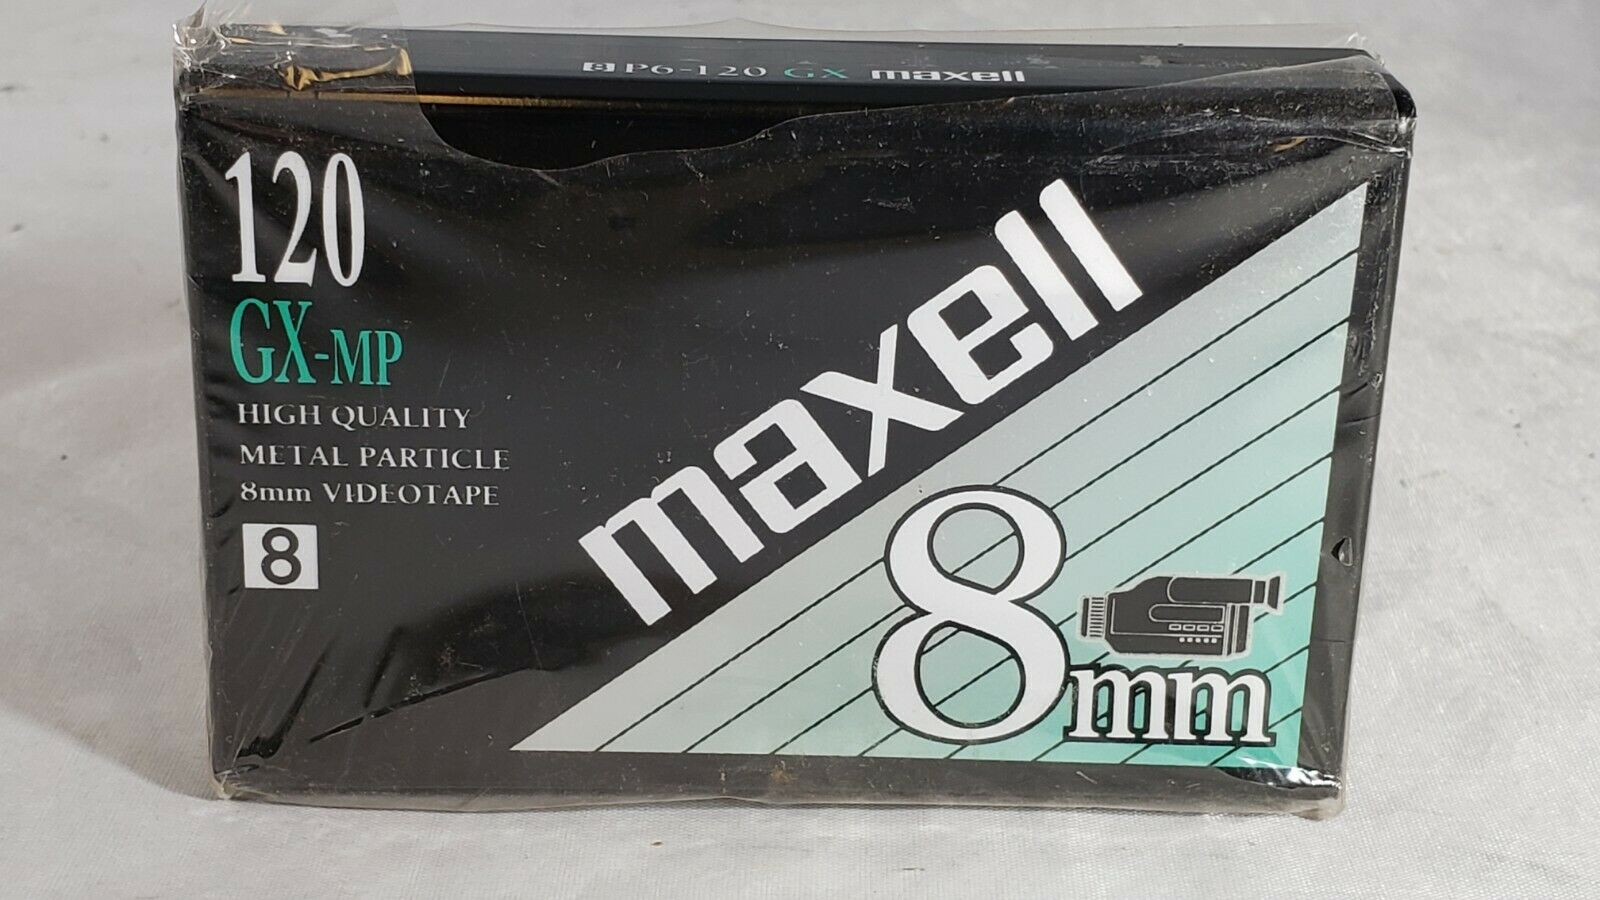 Maxell 8mm GX-MP 8 VHC High Quality 120 Minute Video Cassette for Camcorders